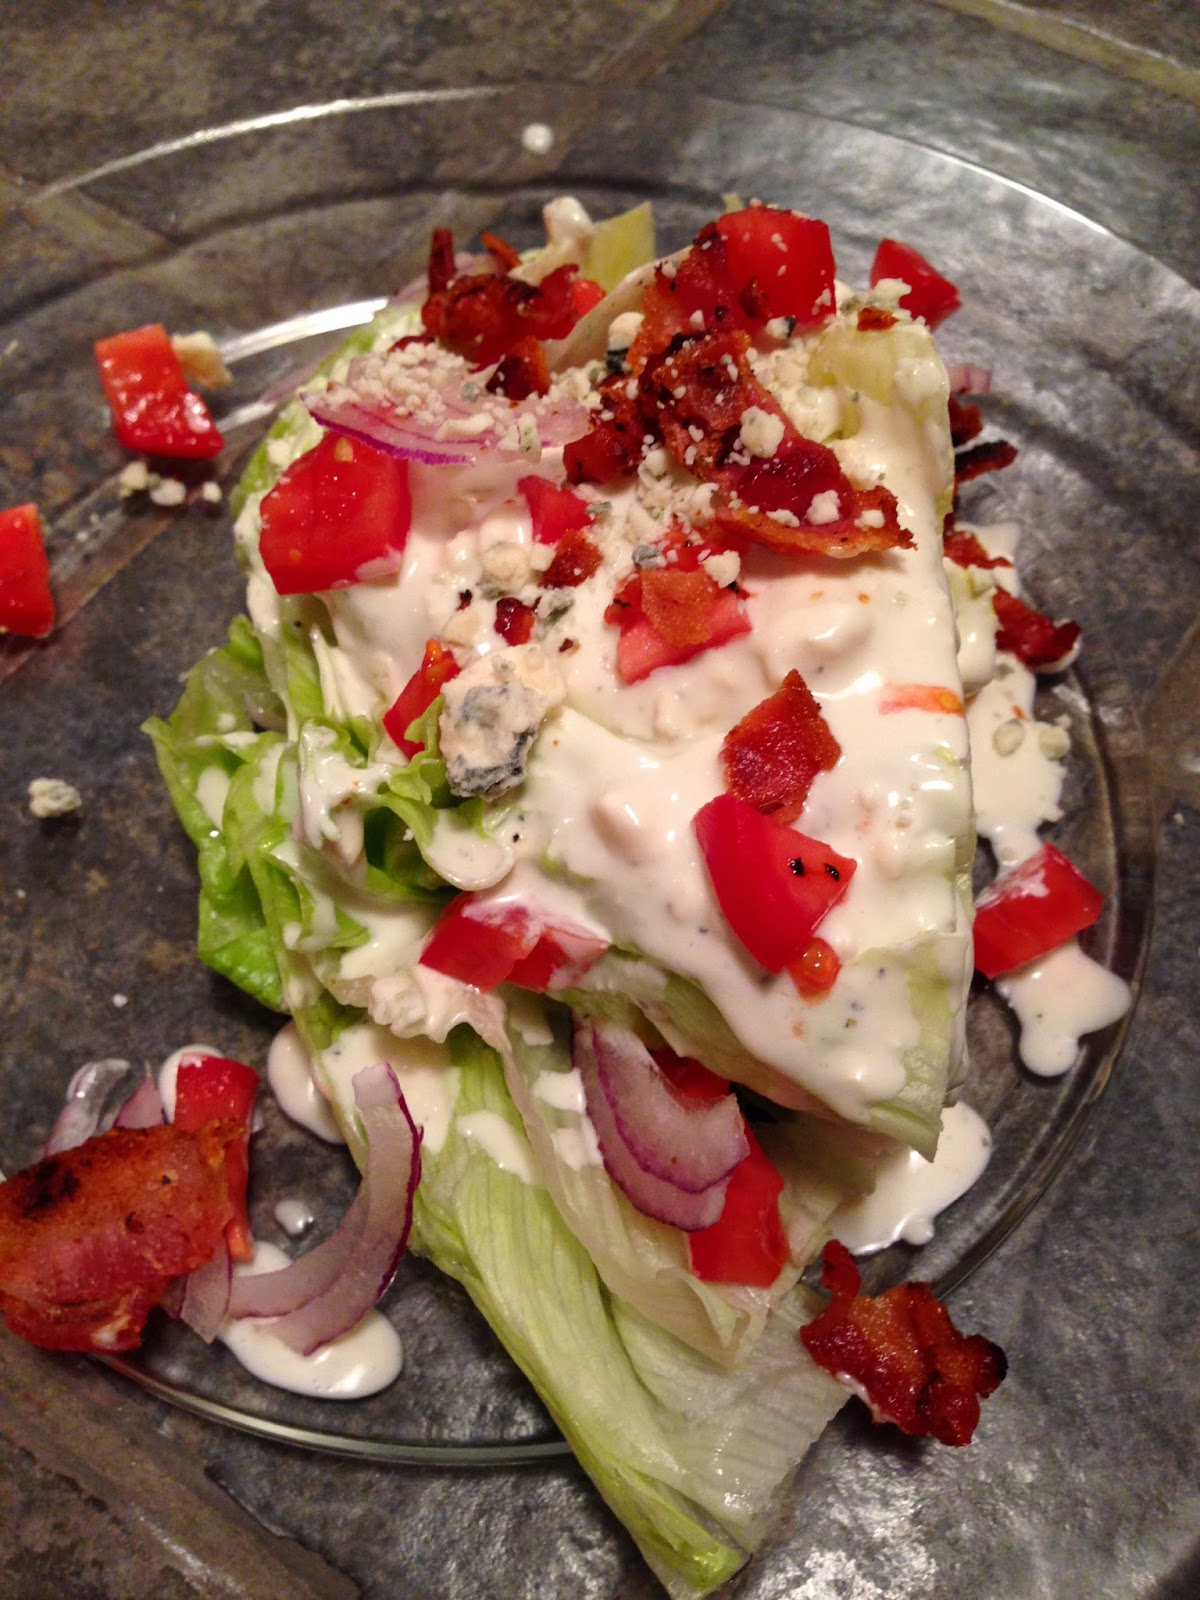 iceberg wedge with blue cheese dressing